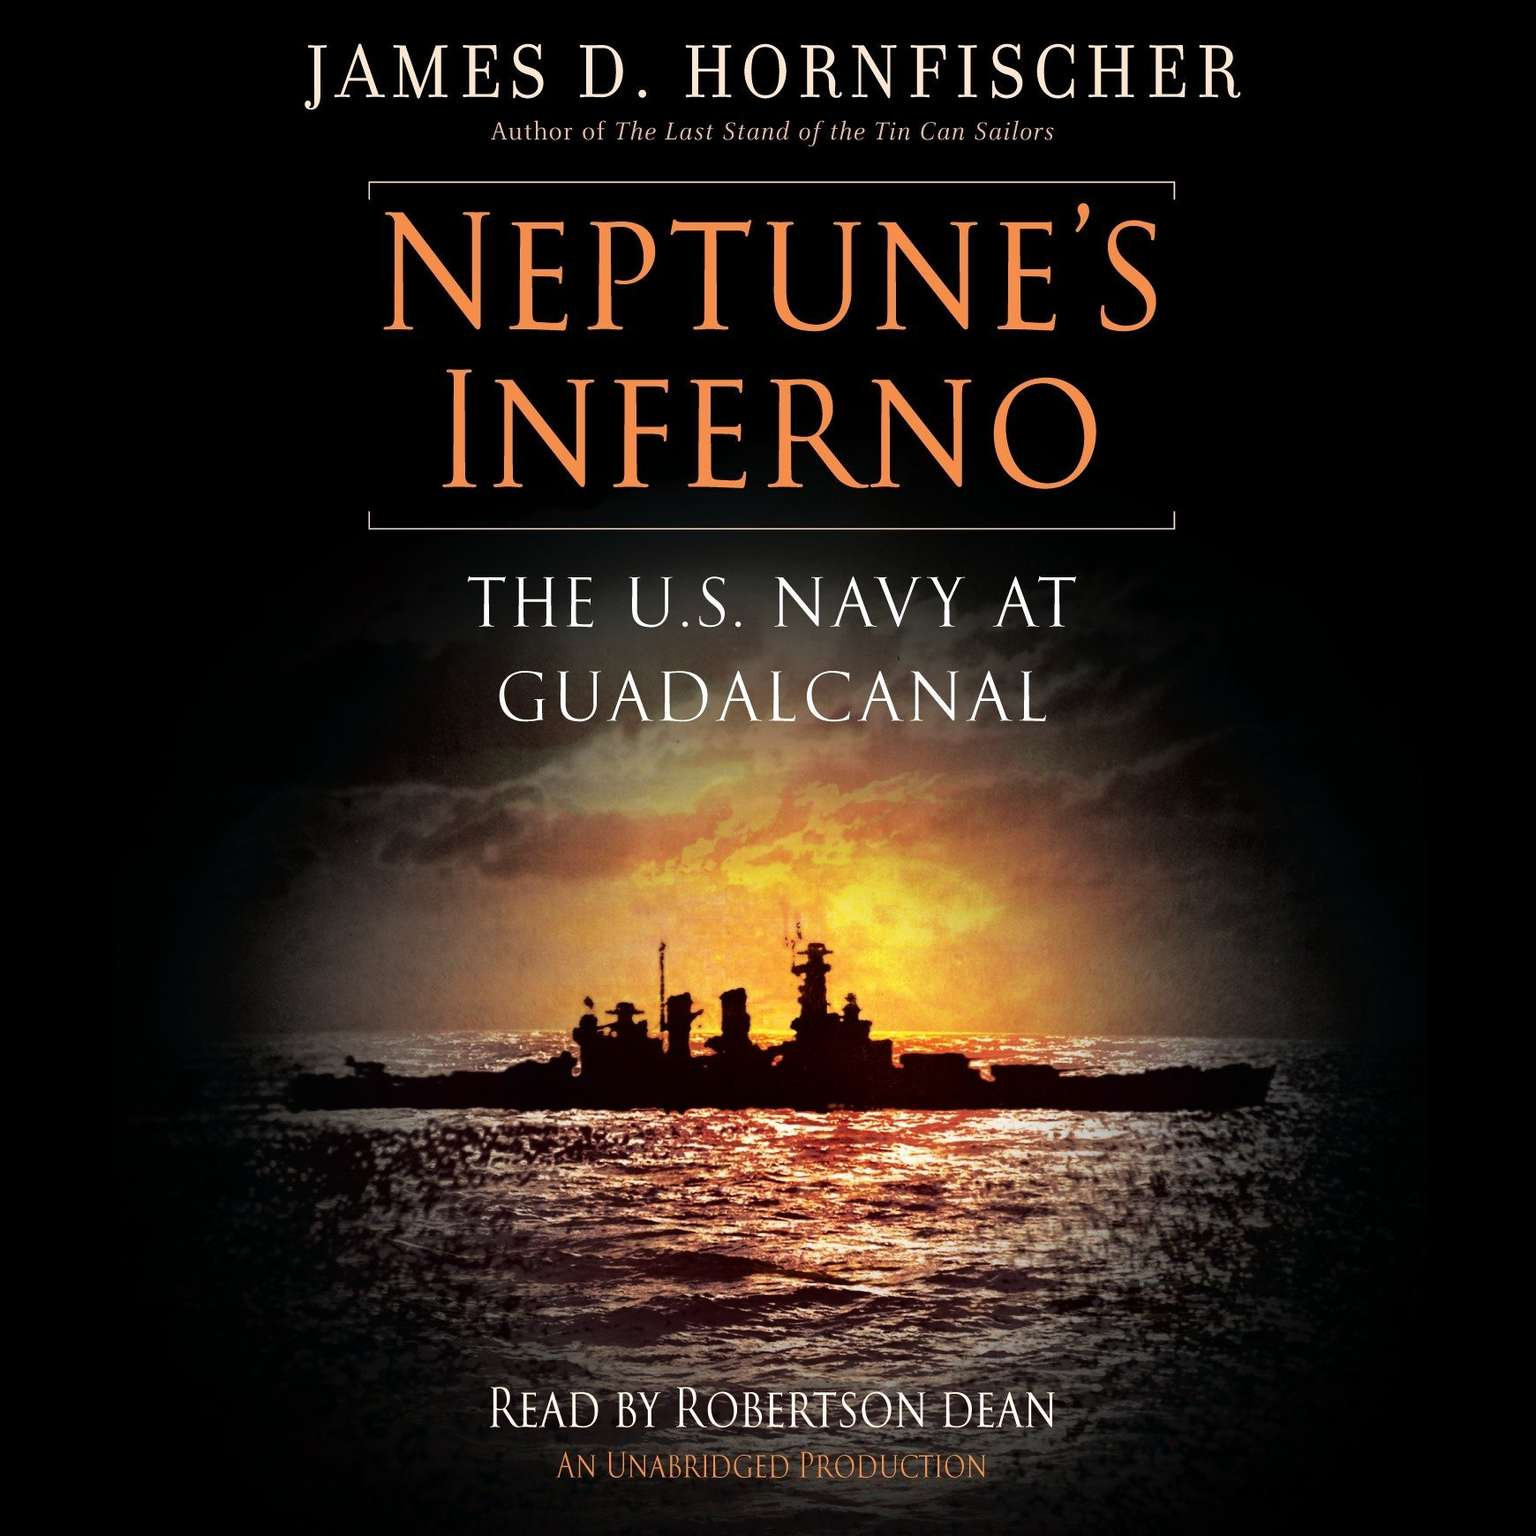 Printable Neptune's Inferno: The U.S. Navy at Guadalcanal Audiobook Cover Art